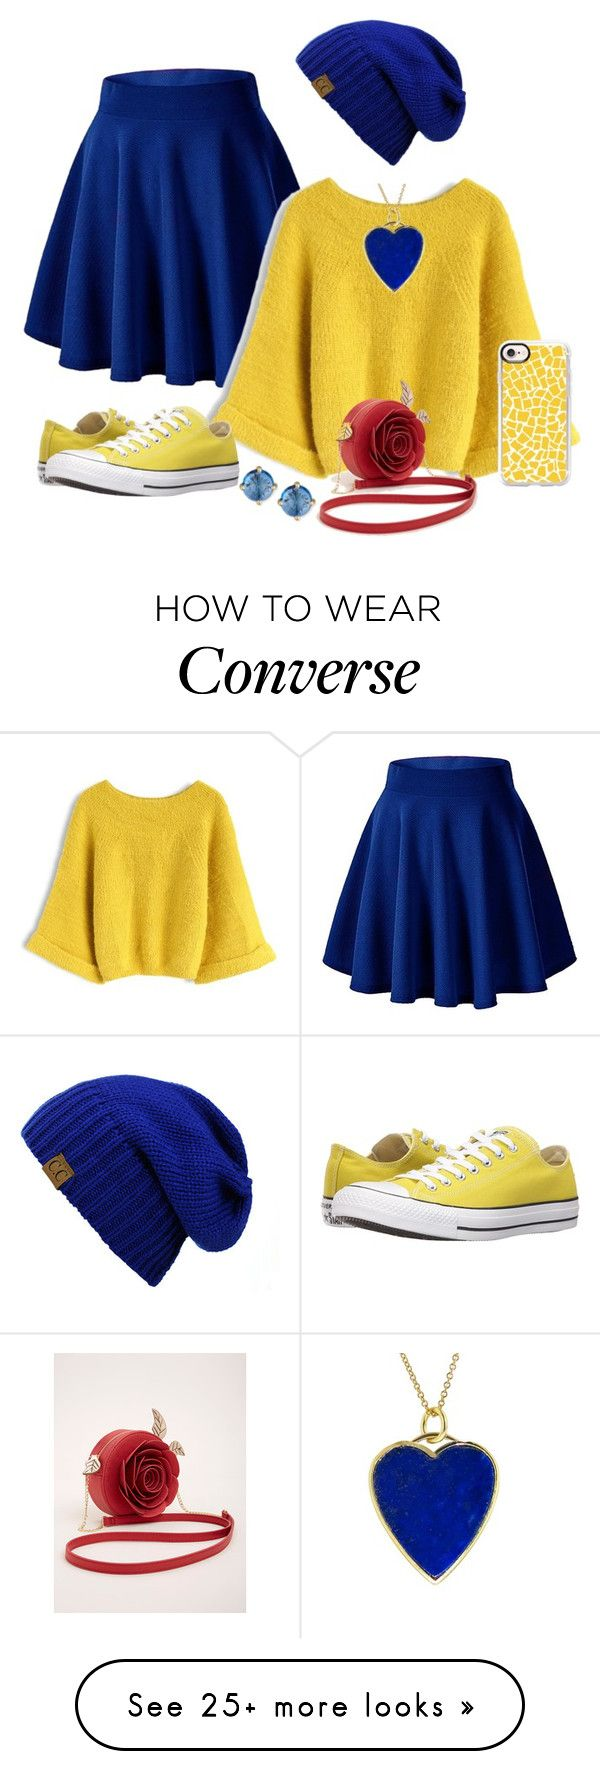 """""""Belle Casual Day"""" by o2lgirlforlife72 on Polyvore featuring Chicwish, Converse, C.C, Jennifer Meyer Jewelry, Casetify, Suzanne Kalan and Torrid"""